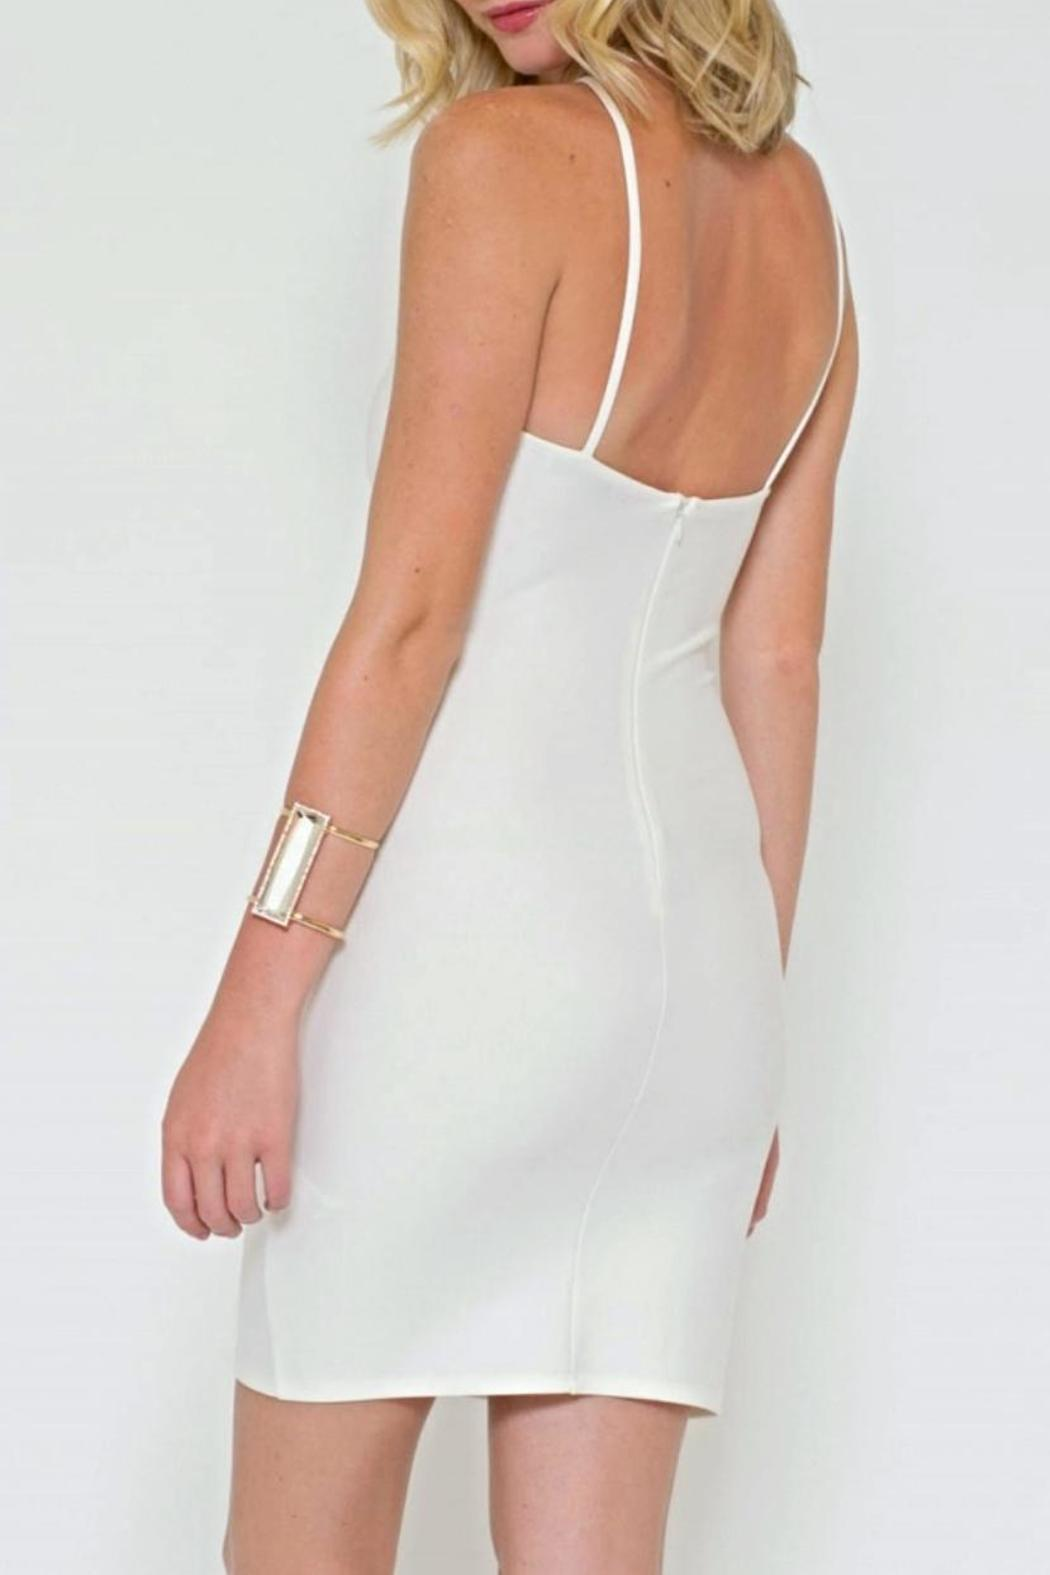 Sole Mio Cutout Bodycon Dress - Side Cropped Image